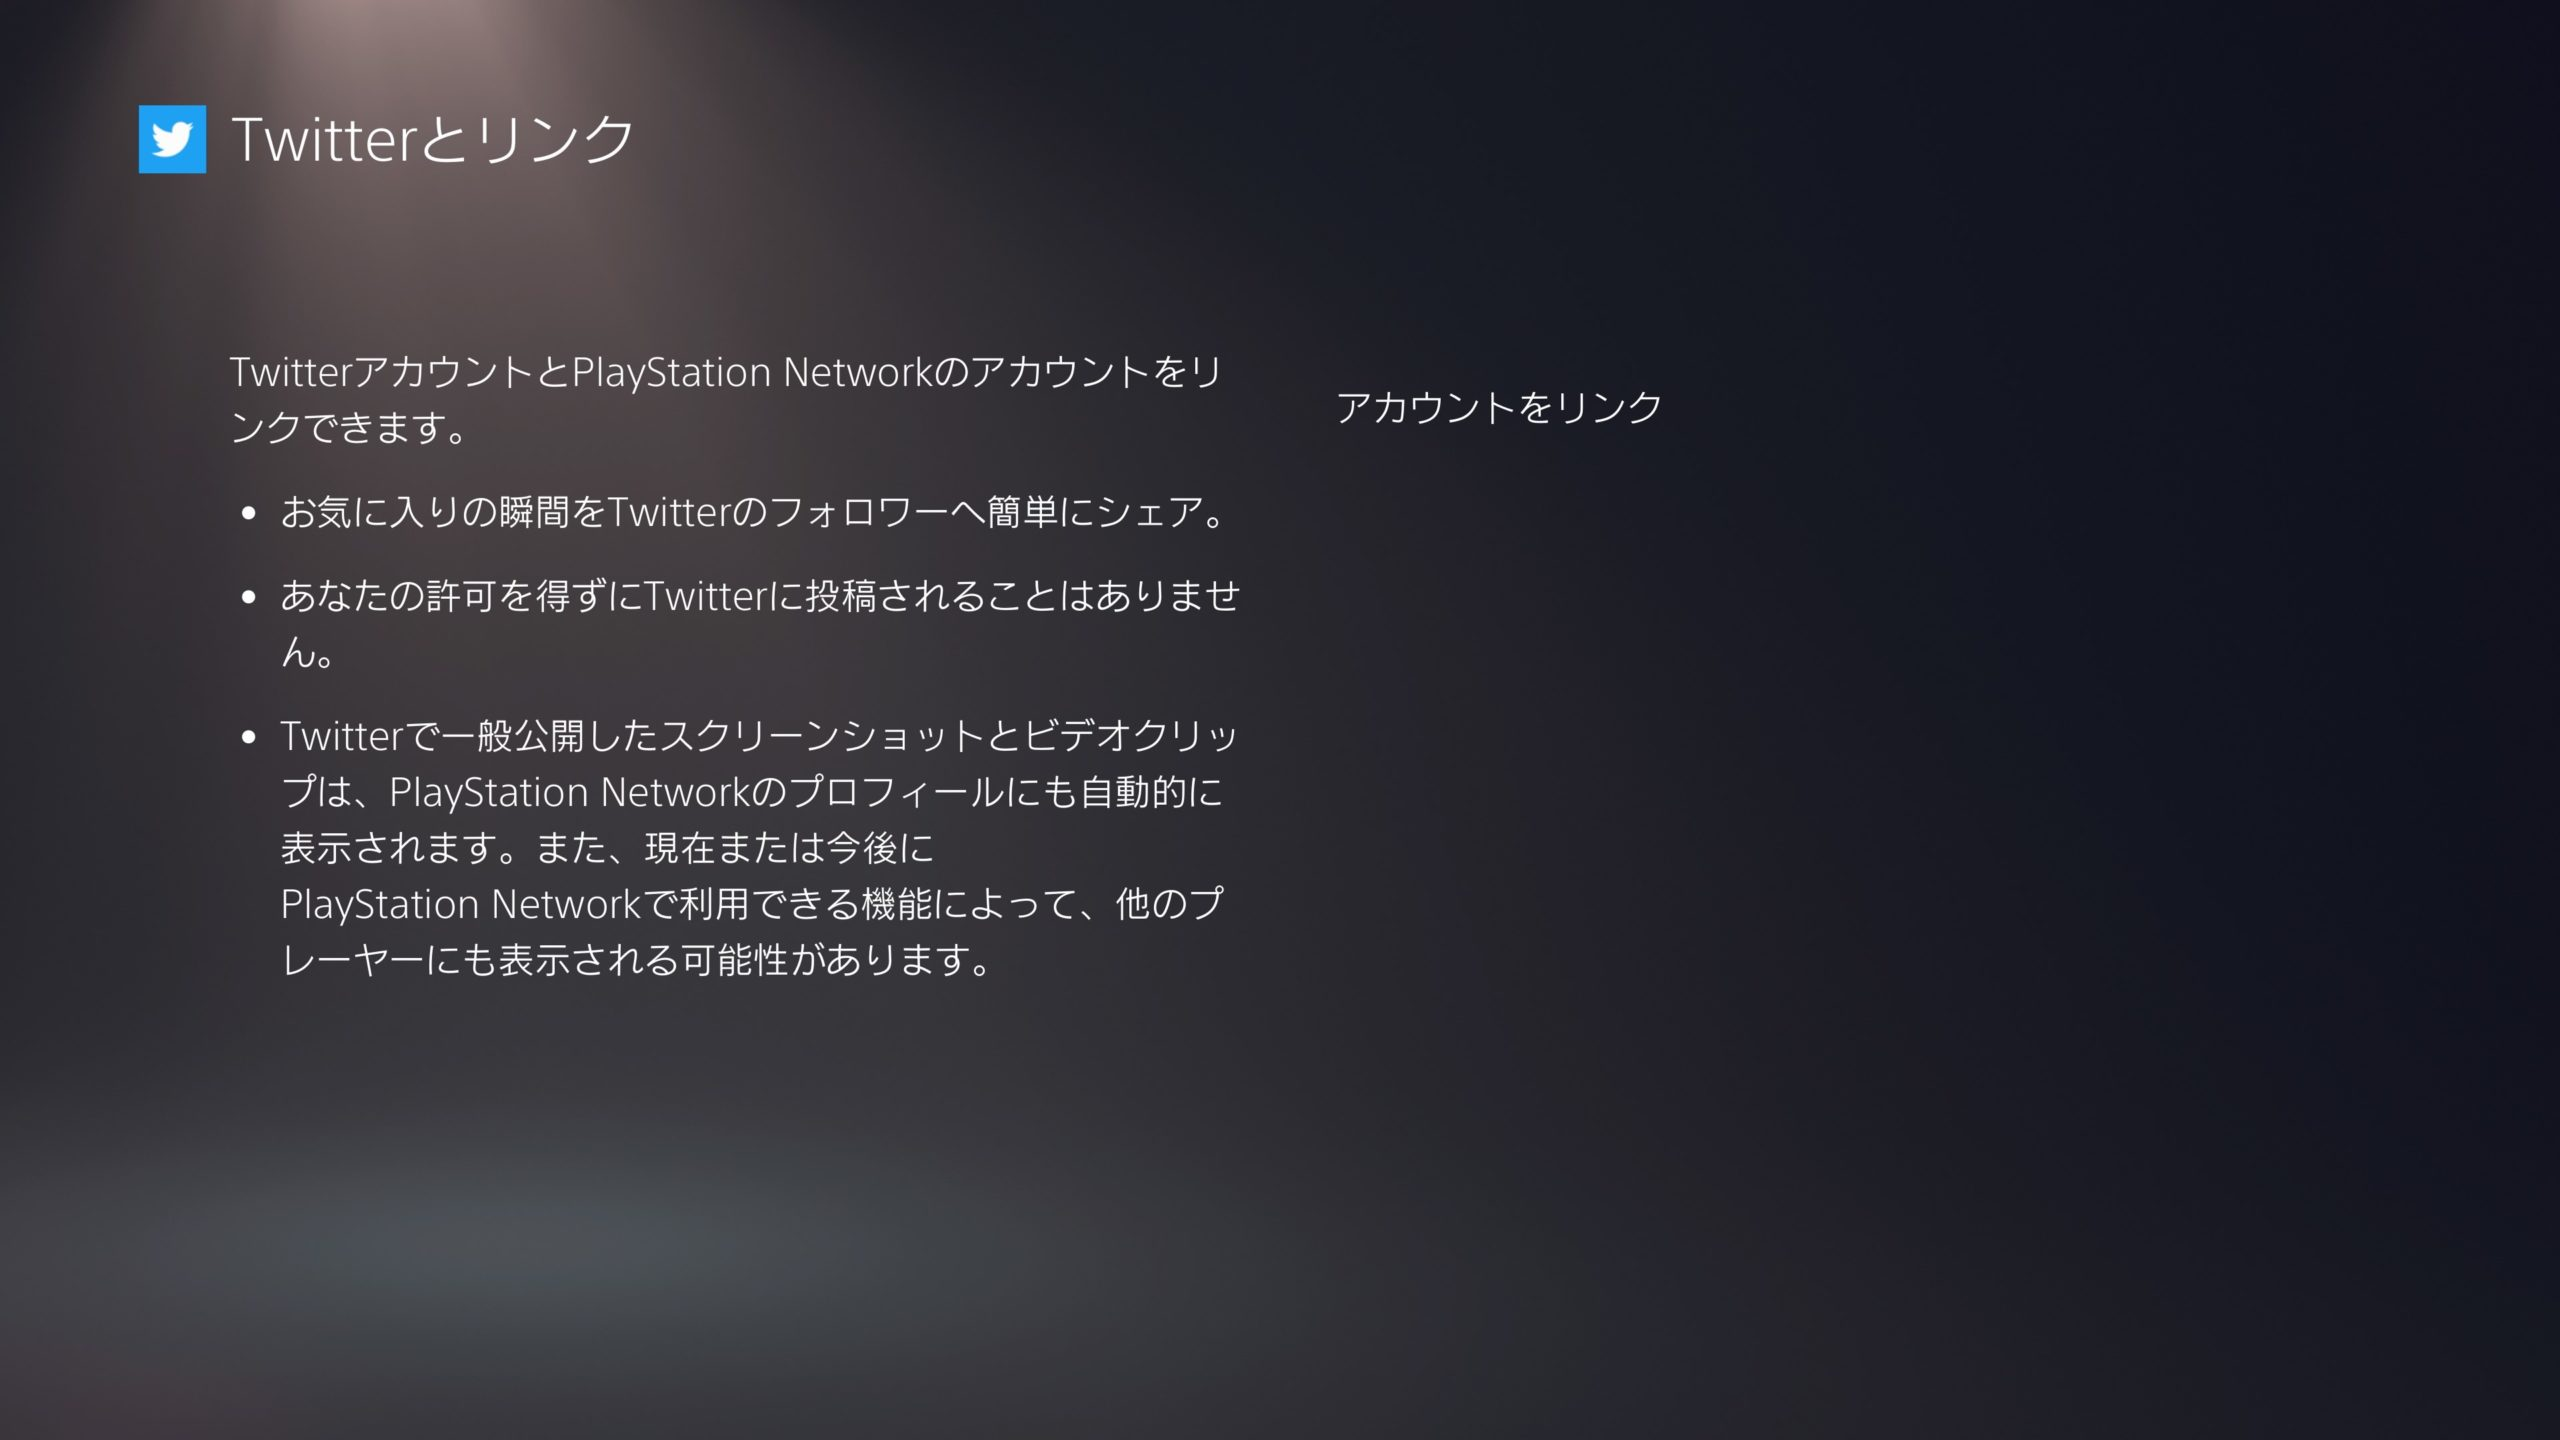 PS5 Twitterとリンク